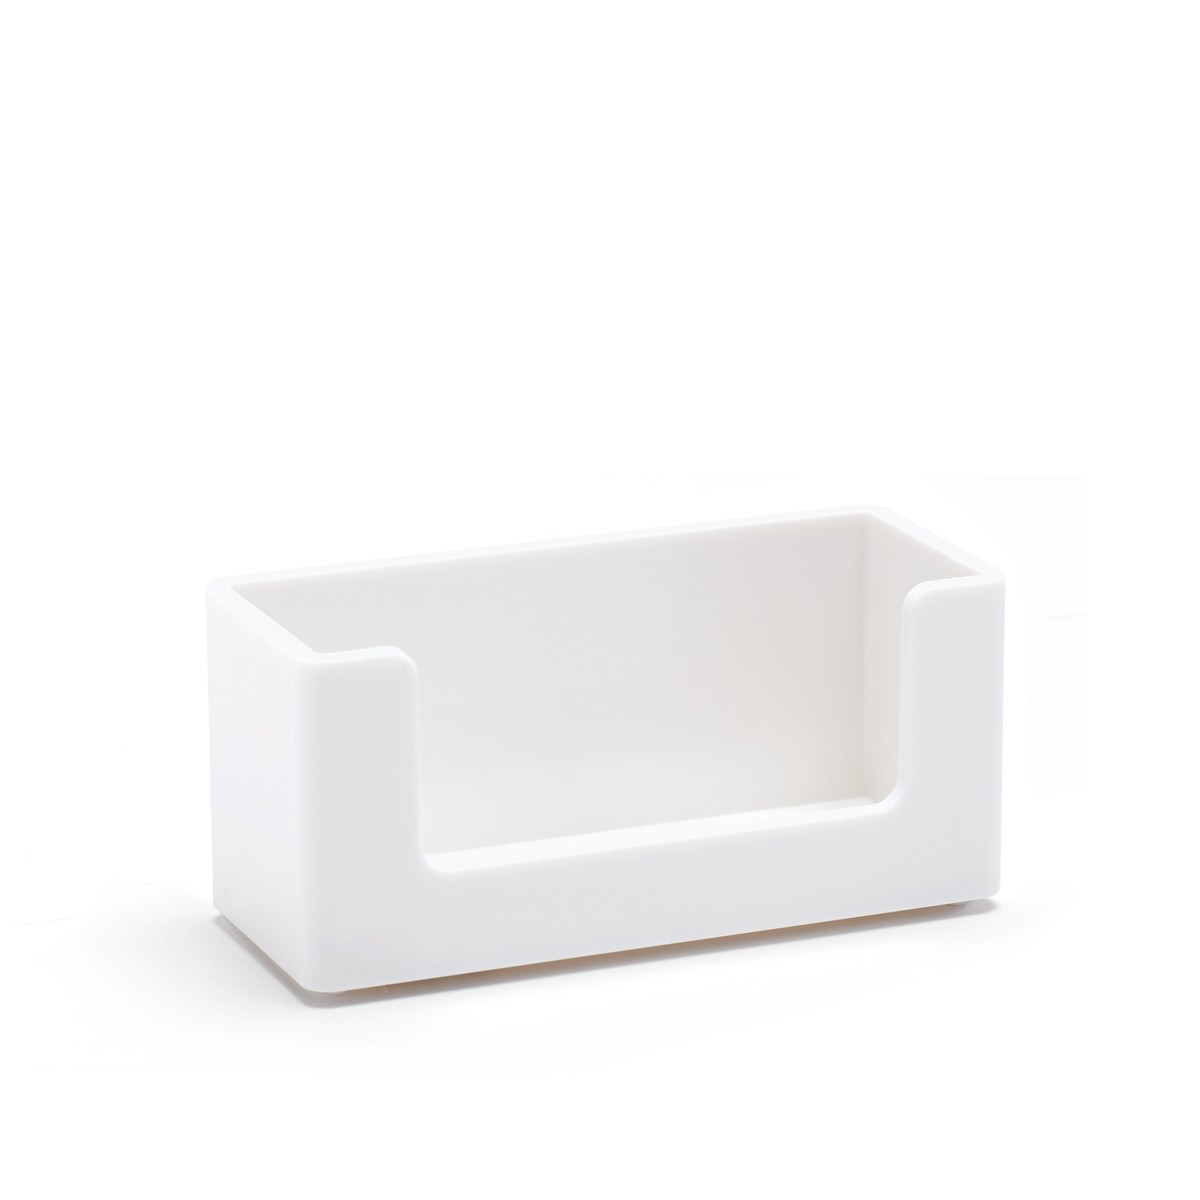 White business card holder desk accessories organization poppin images white business card holder colourmoves